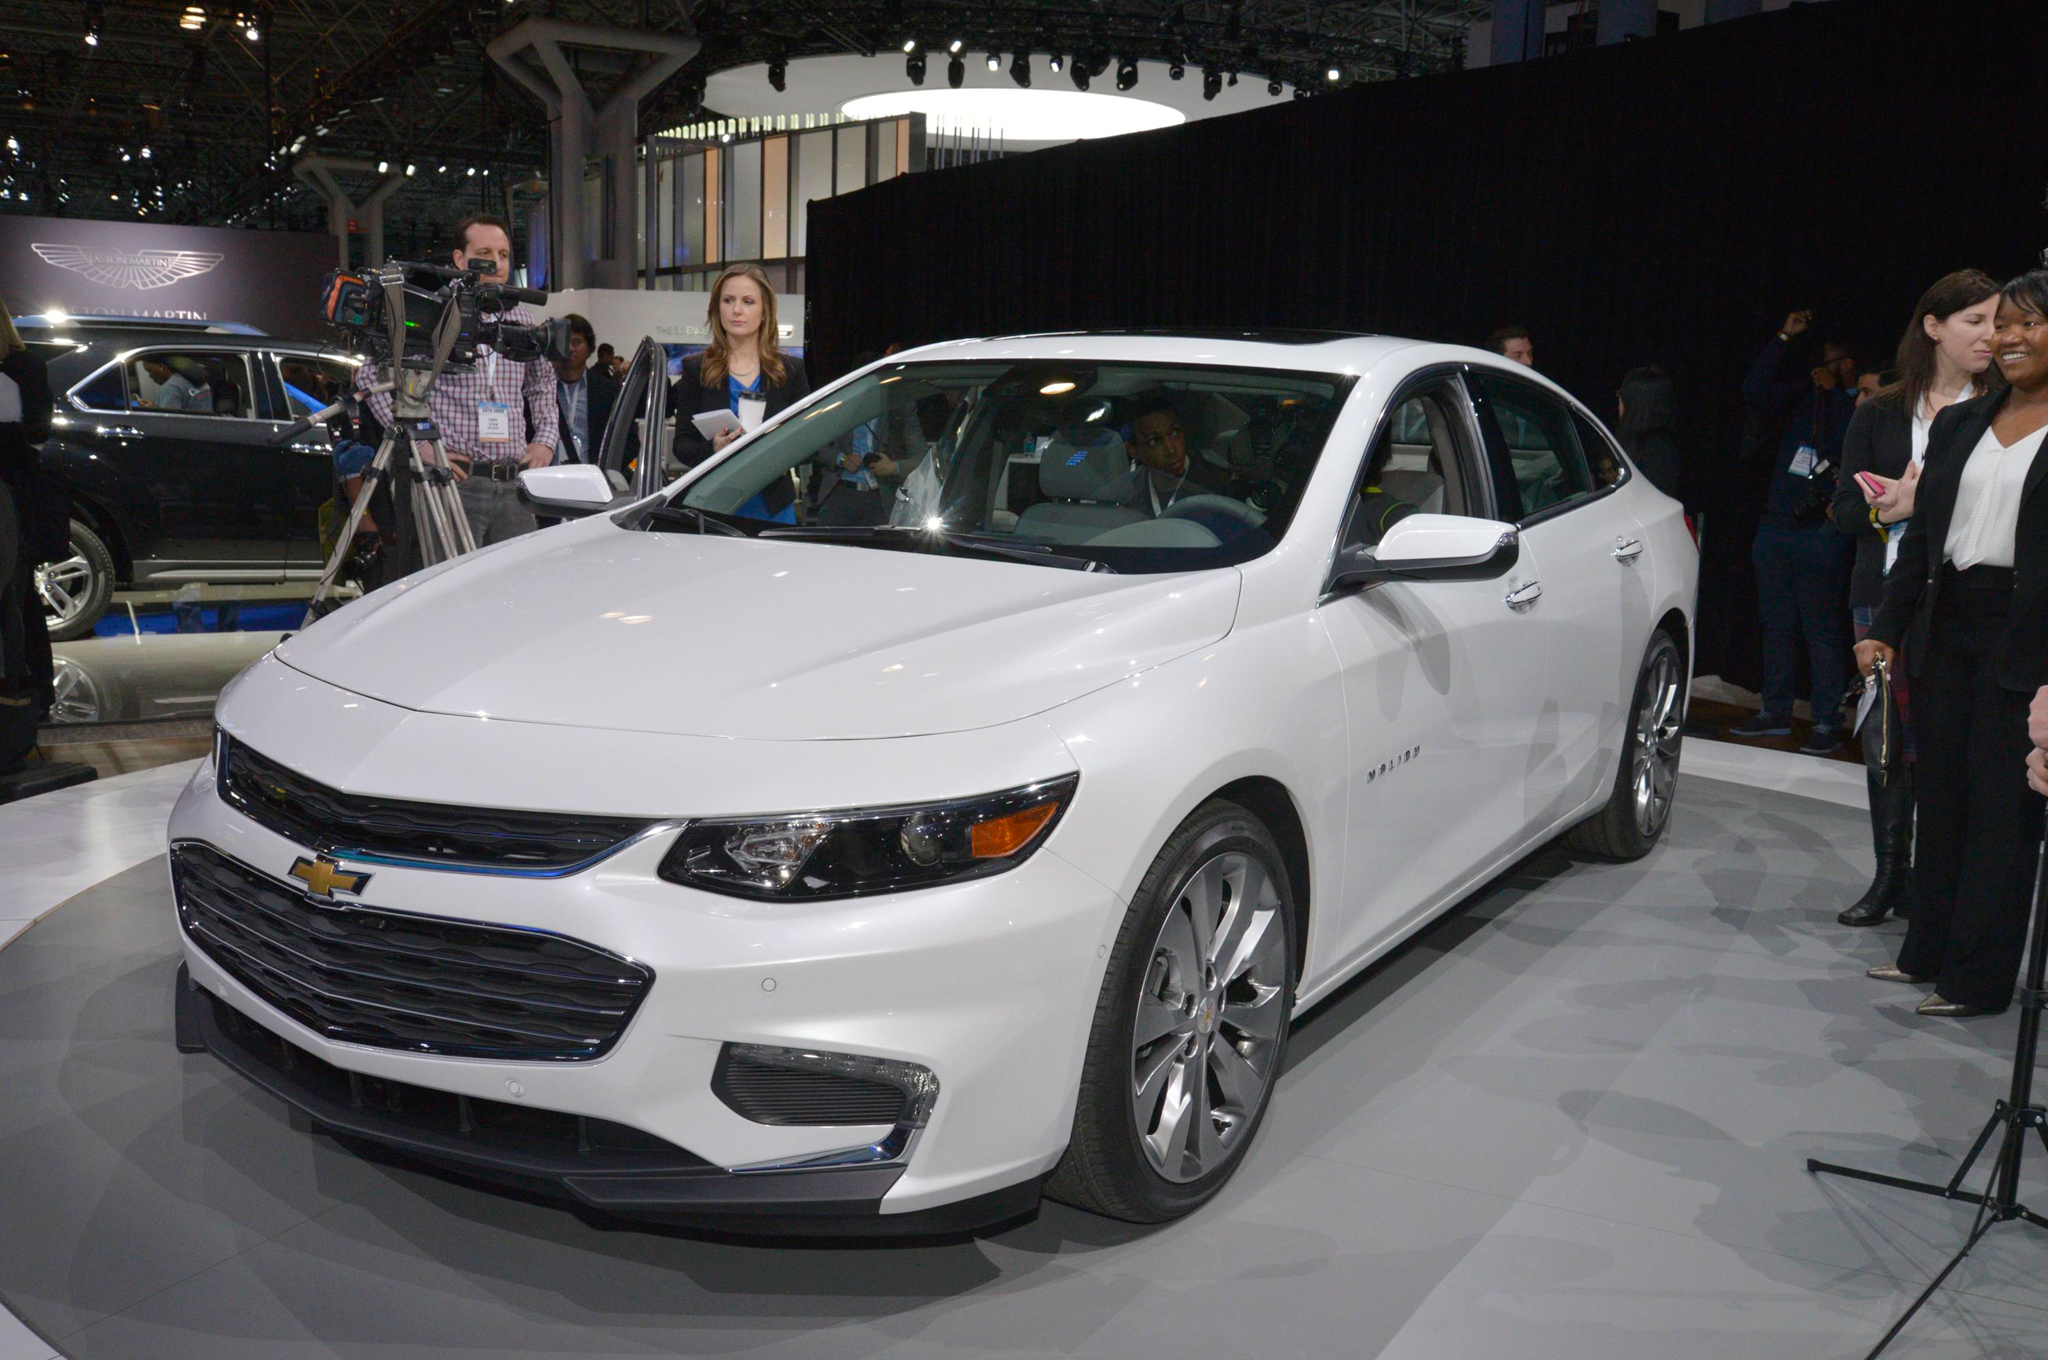 2016 Chevrolet Malibu First Look Motor Trend 04 S2000 Fuse Box